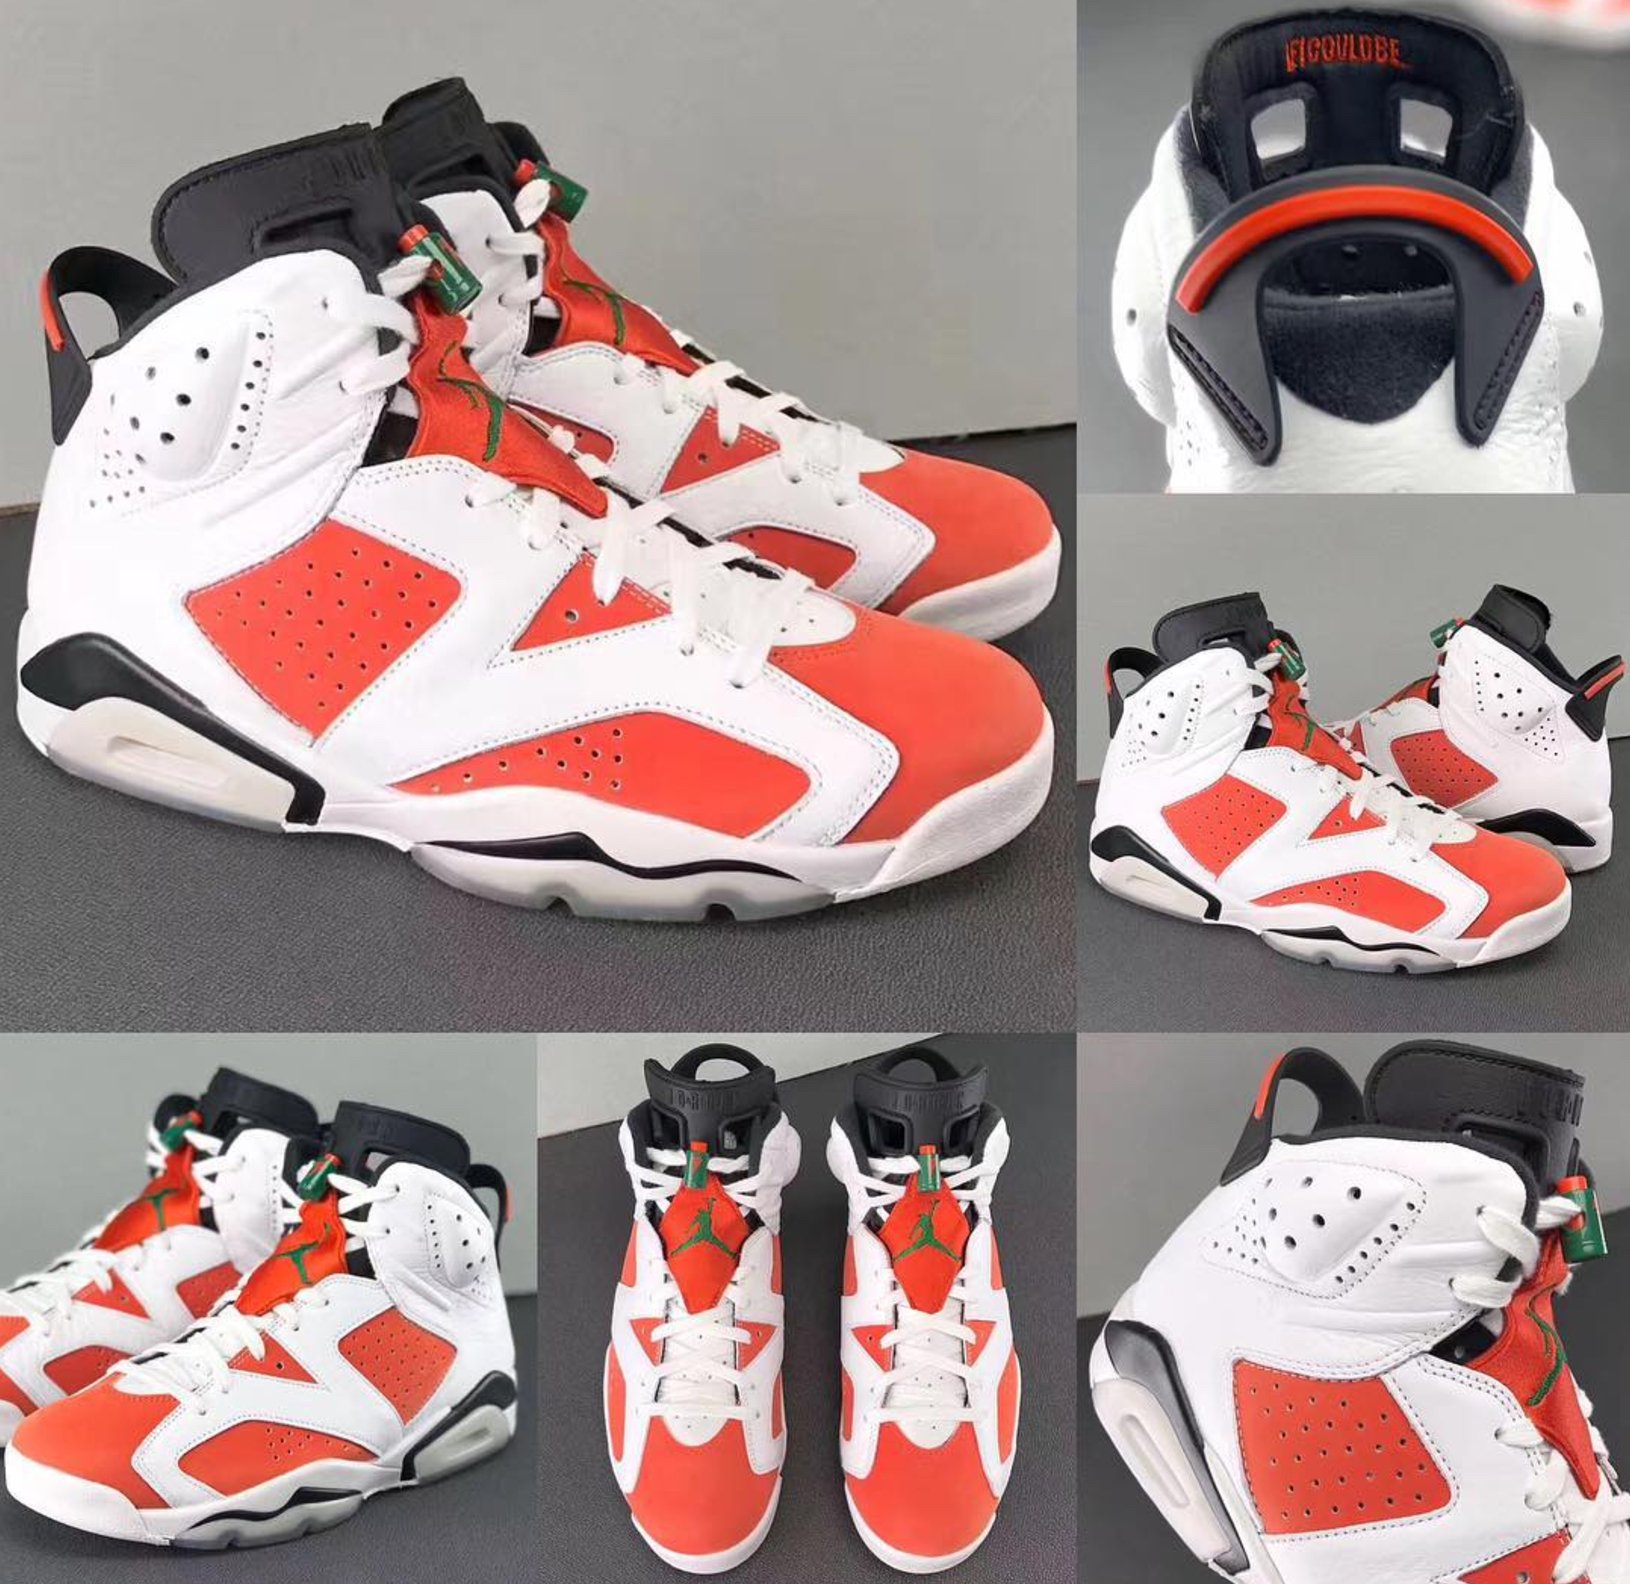 e6b73a99d92 The Upcoming Air Jordan Retro 6 'Gatorade' Looks Very Familiar ...